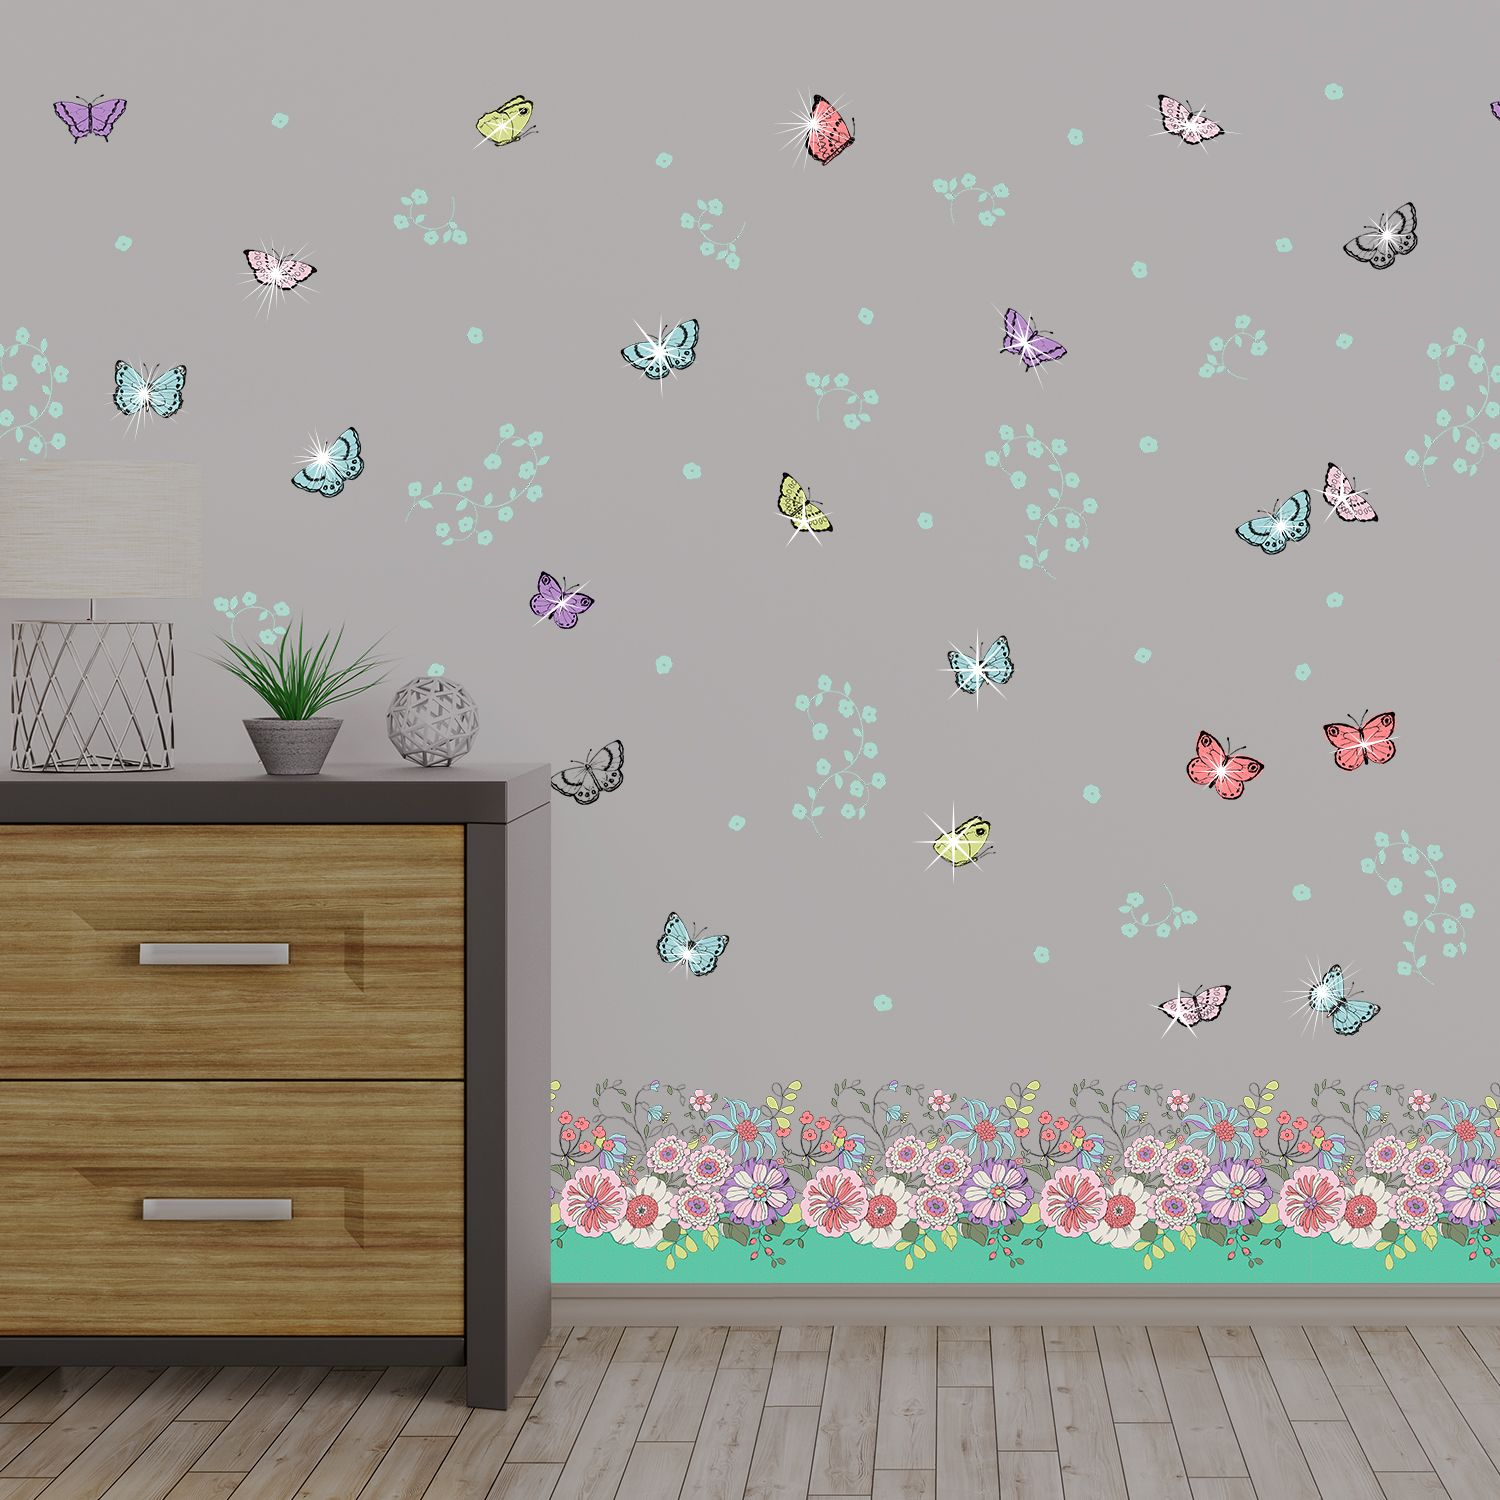 Walplus Wall Sticker Colourful Butterfly Skirting Pack Art Decal Decoration with Swarovski Crystals